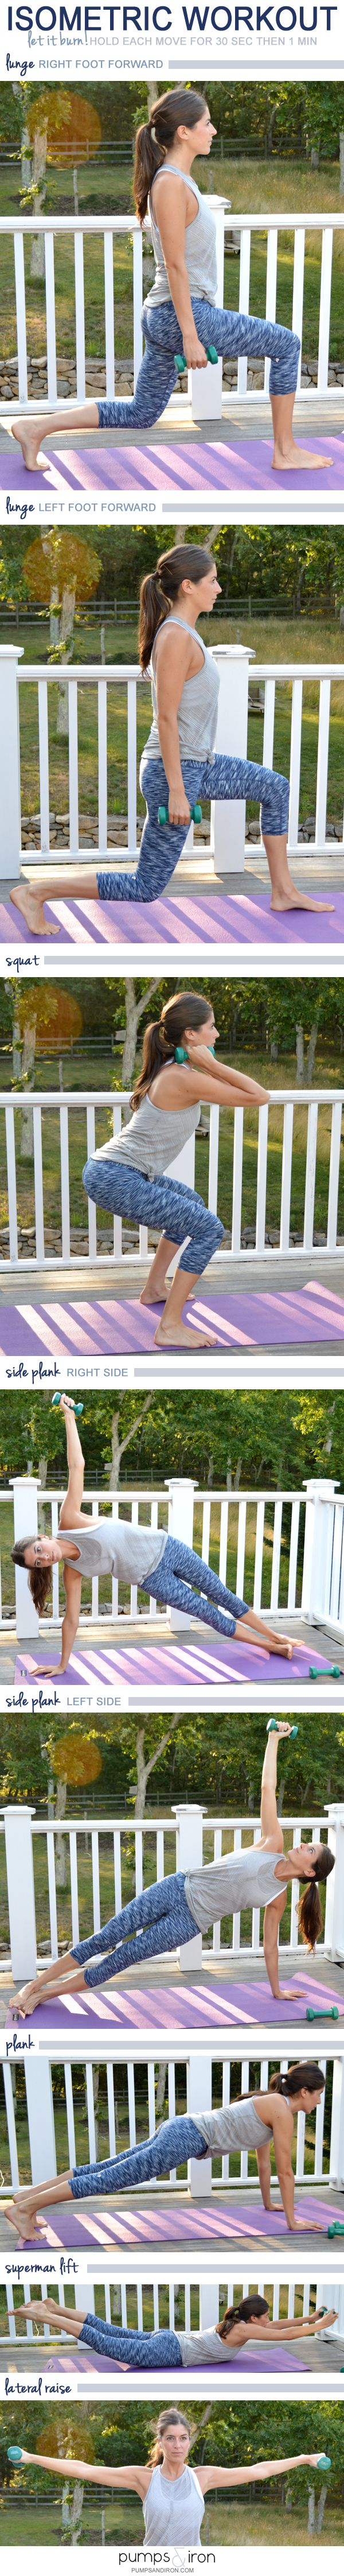 Isometric Workout (perfect for apartment dwellers--no noise!)